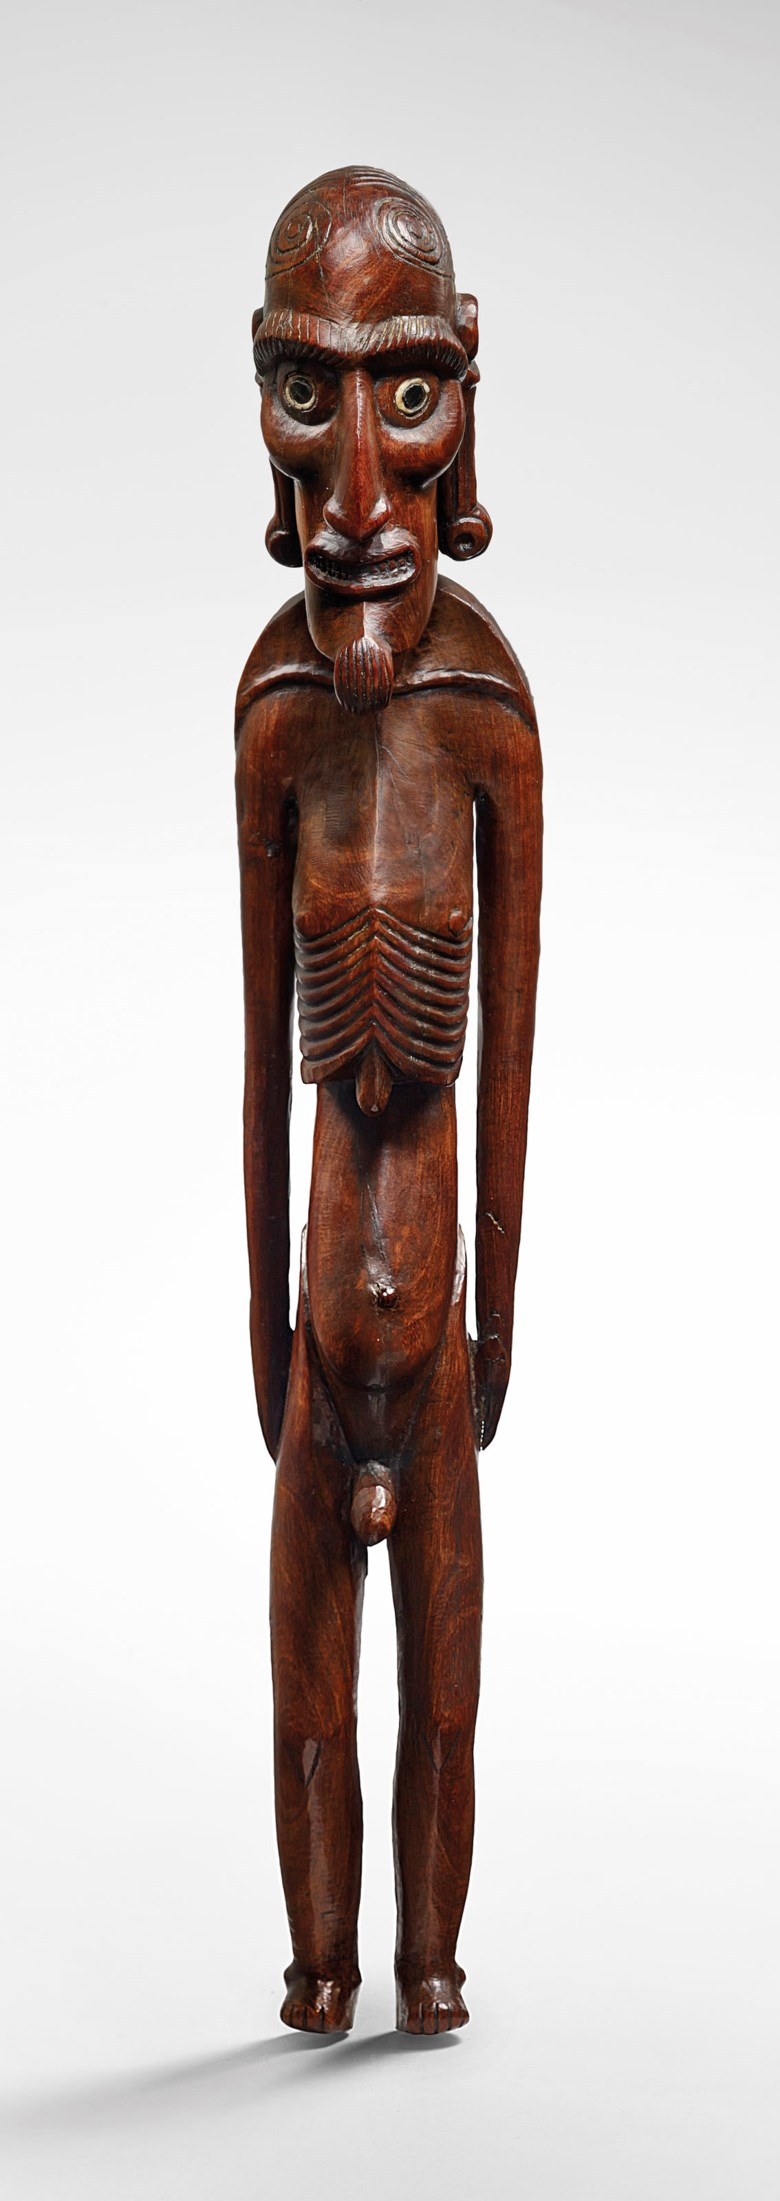 The Hooper Moai Kavakava figure, Rapa Nui, Easter Island, Polynesia. Height 17⅜ in (44  cm). Sold for €850,000on 10 April 2019 at Christie's in Paris